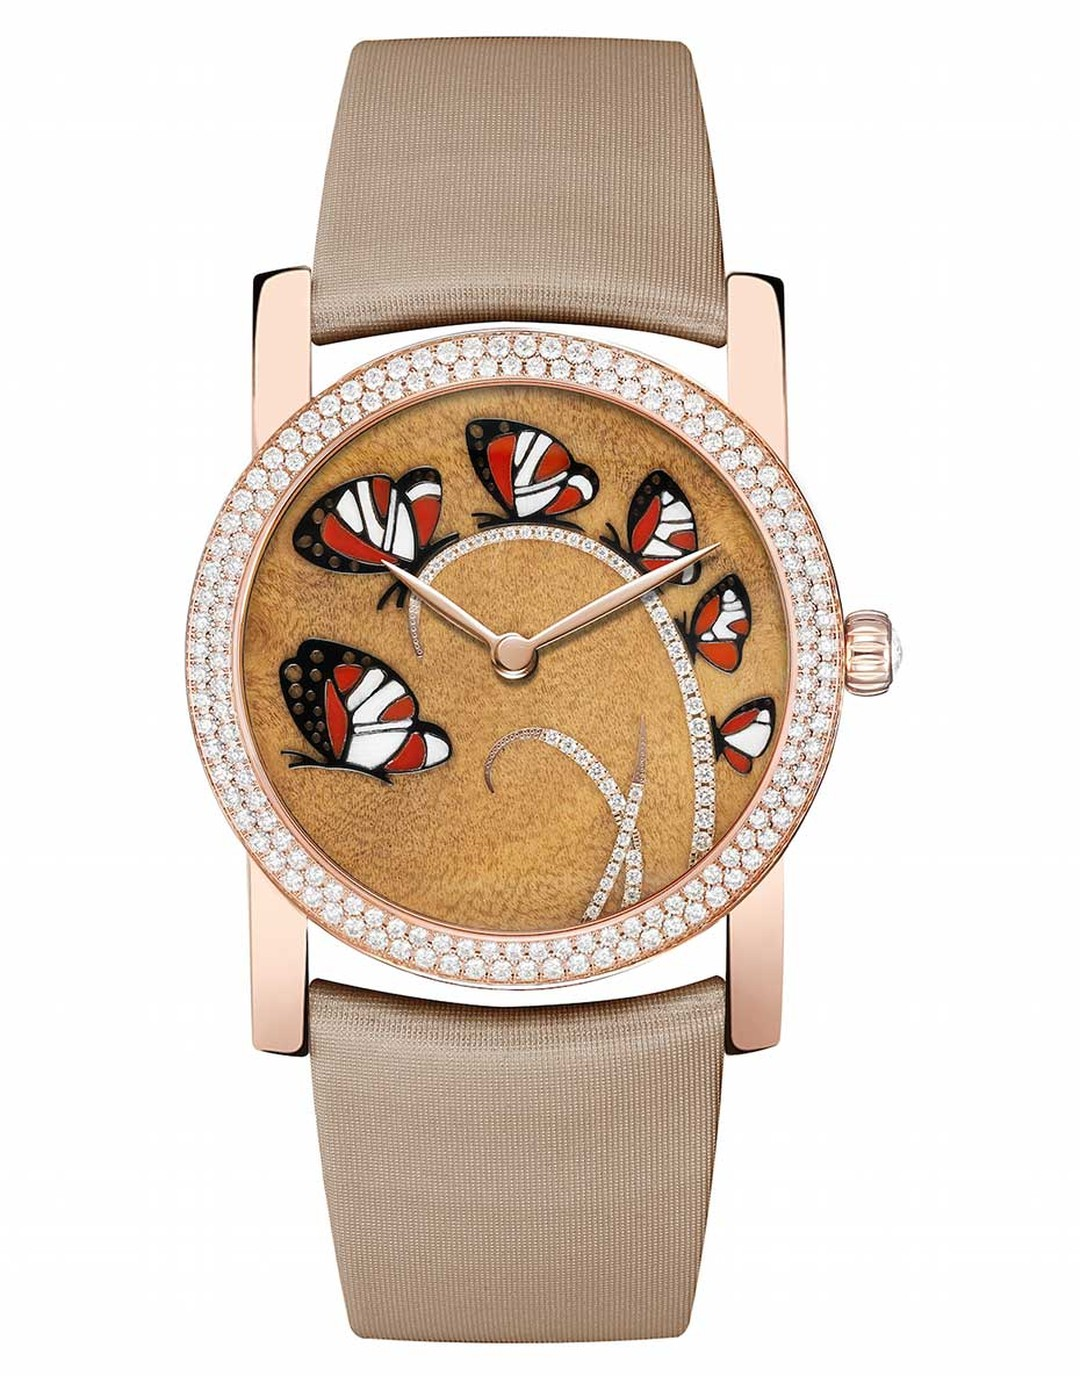 Chaumet Attrape-moi...si tu m'aimes (Catch me...if you love me) watch in pink gold, with a dial decorated with six butterflies set against a precious myrtle burl wood background. The butterfly wings are made from inlaid red carnelian, white wood and black